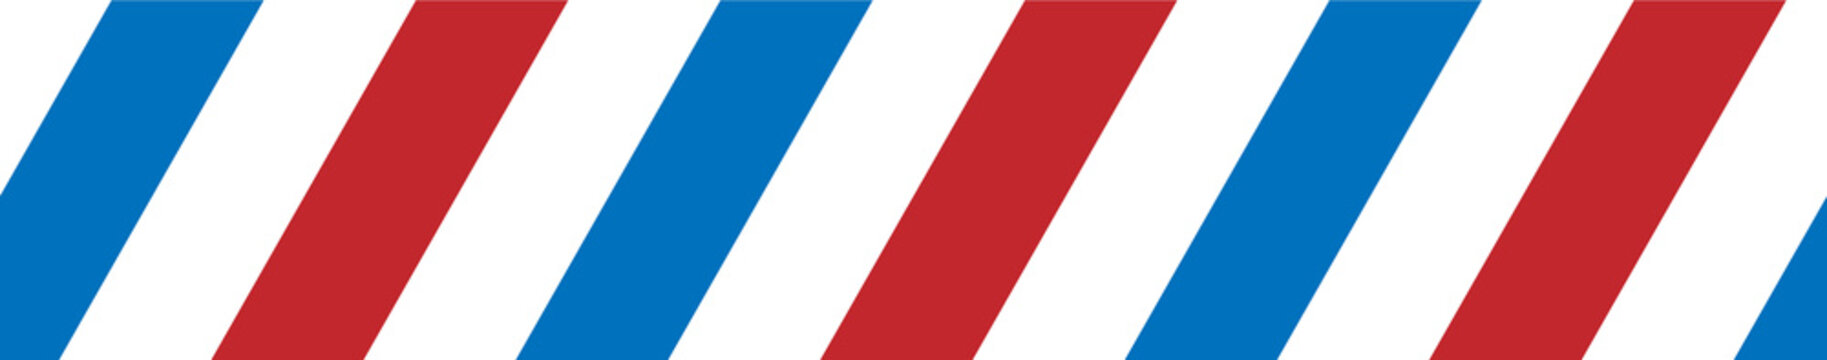 Simple blue white red diagonal stripes pattern - seamless from left to right